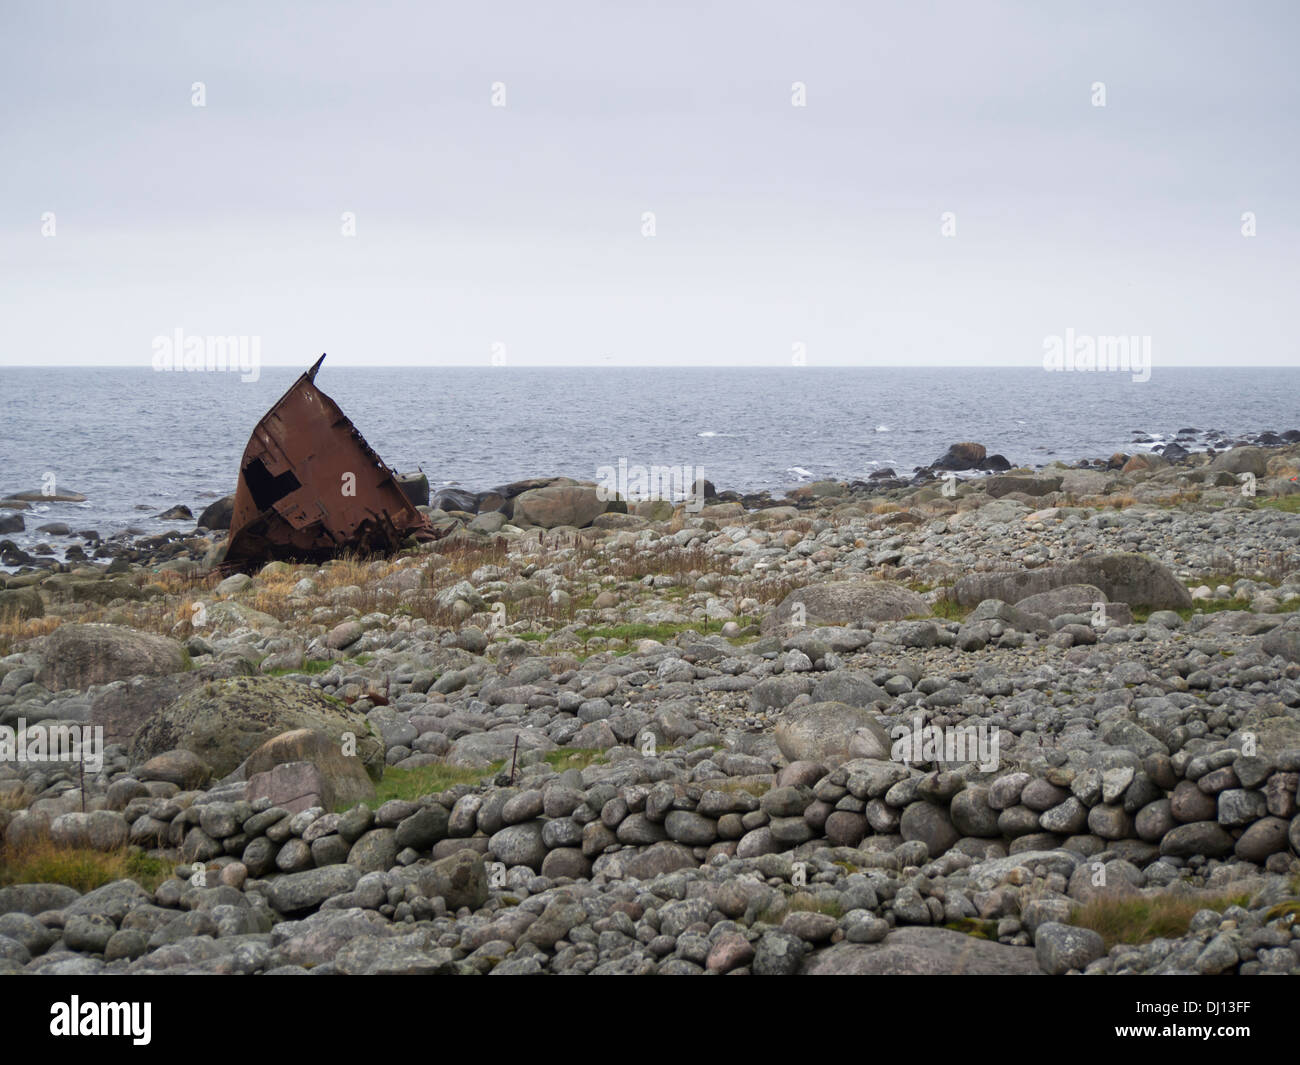 Rusty shipwreck on the shoreline of the North sea, Jæren near Stavanger Norway, rolling stones, stone wall and rough seas - Stock Image